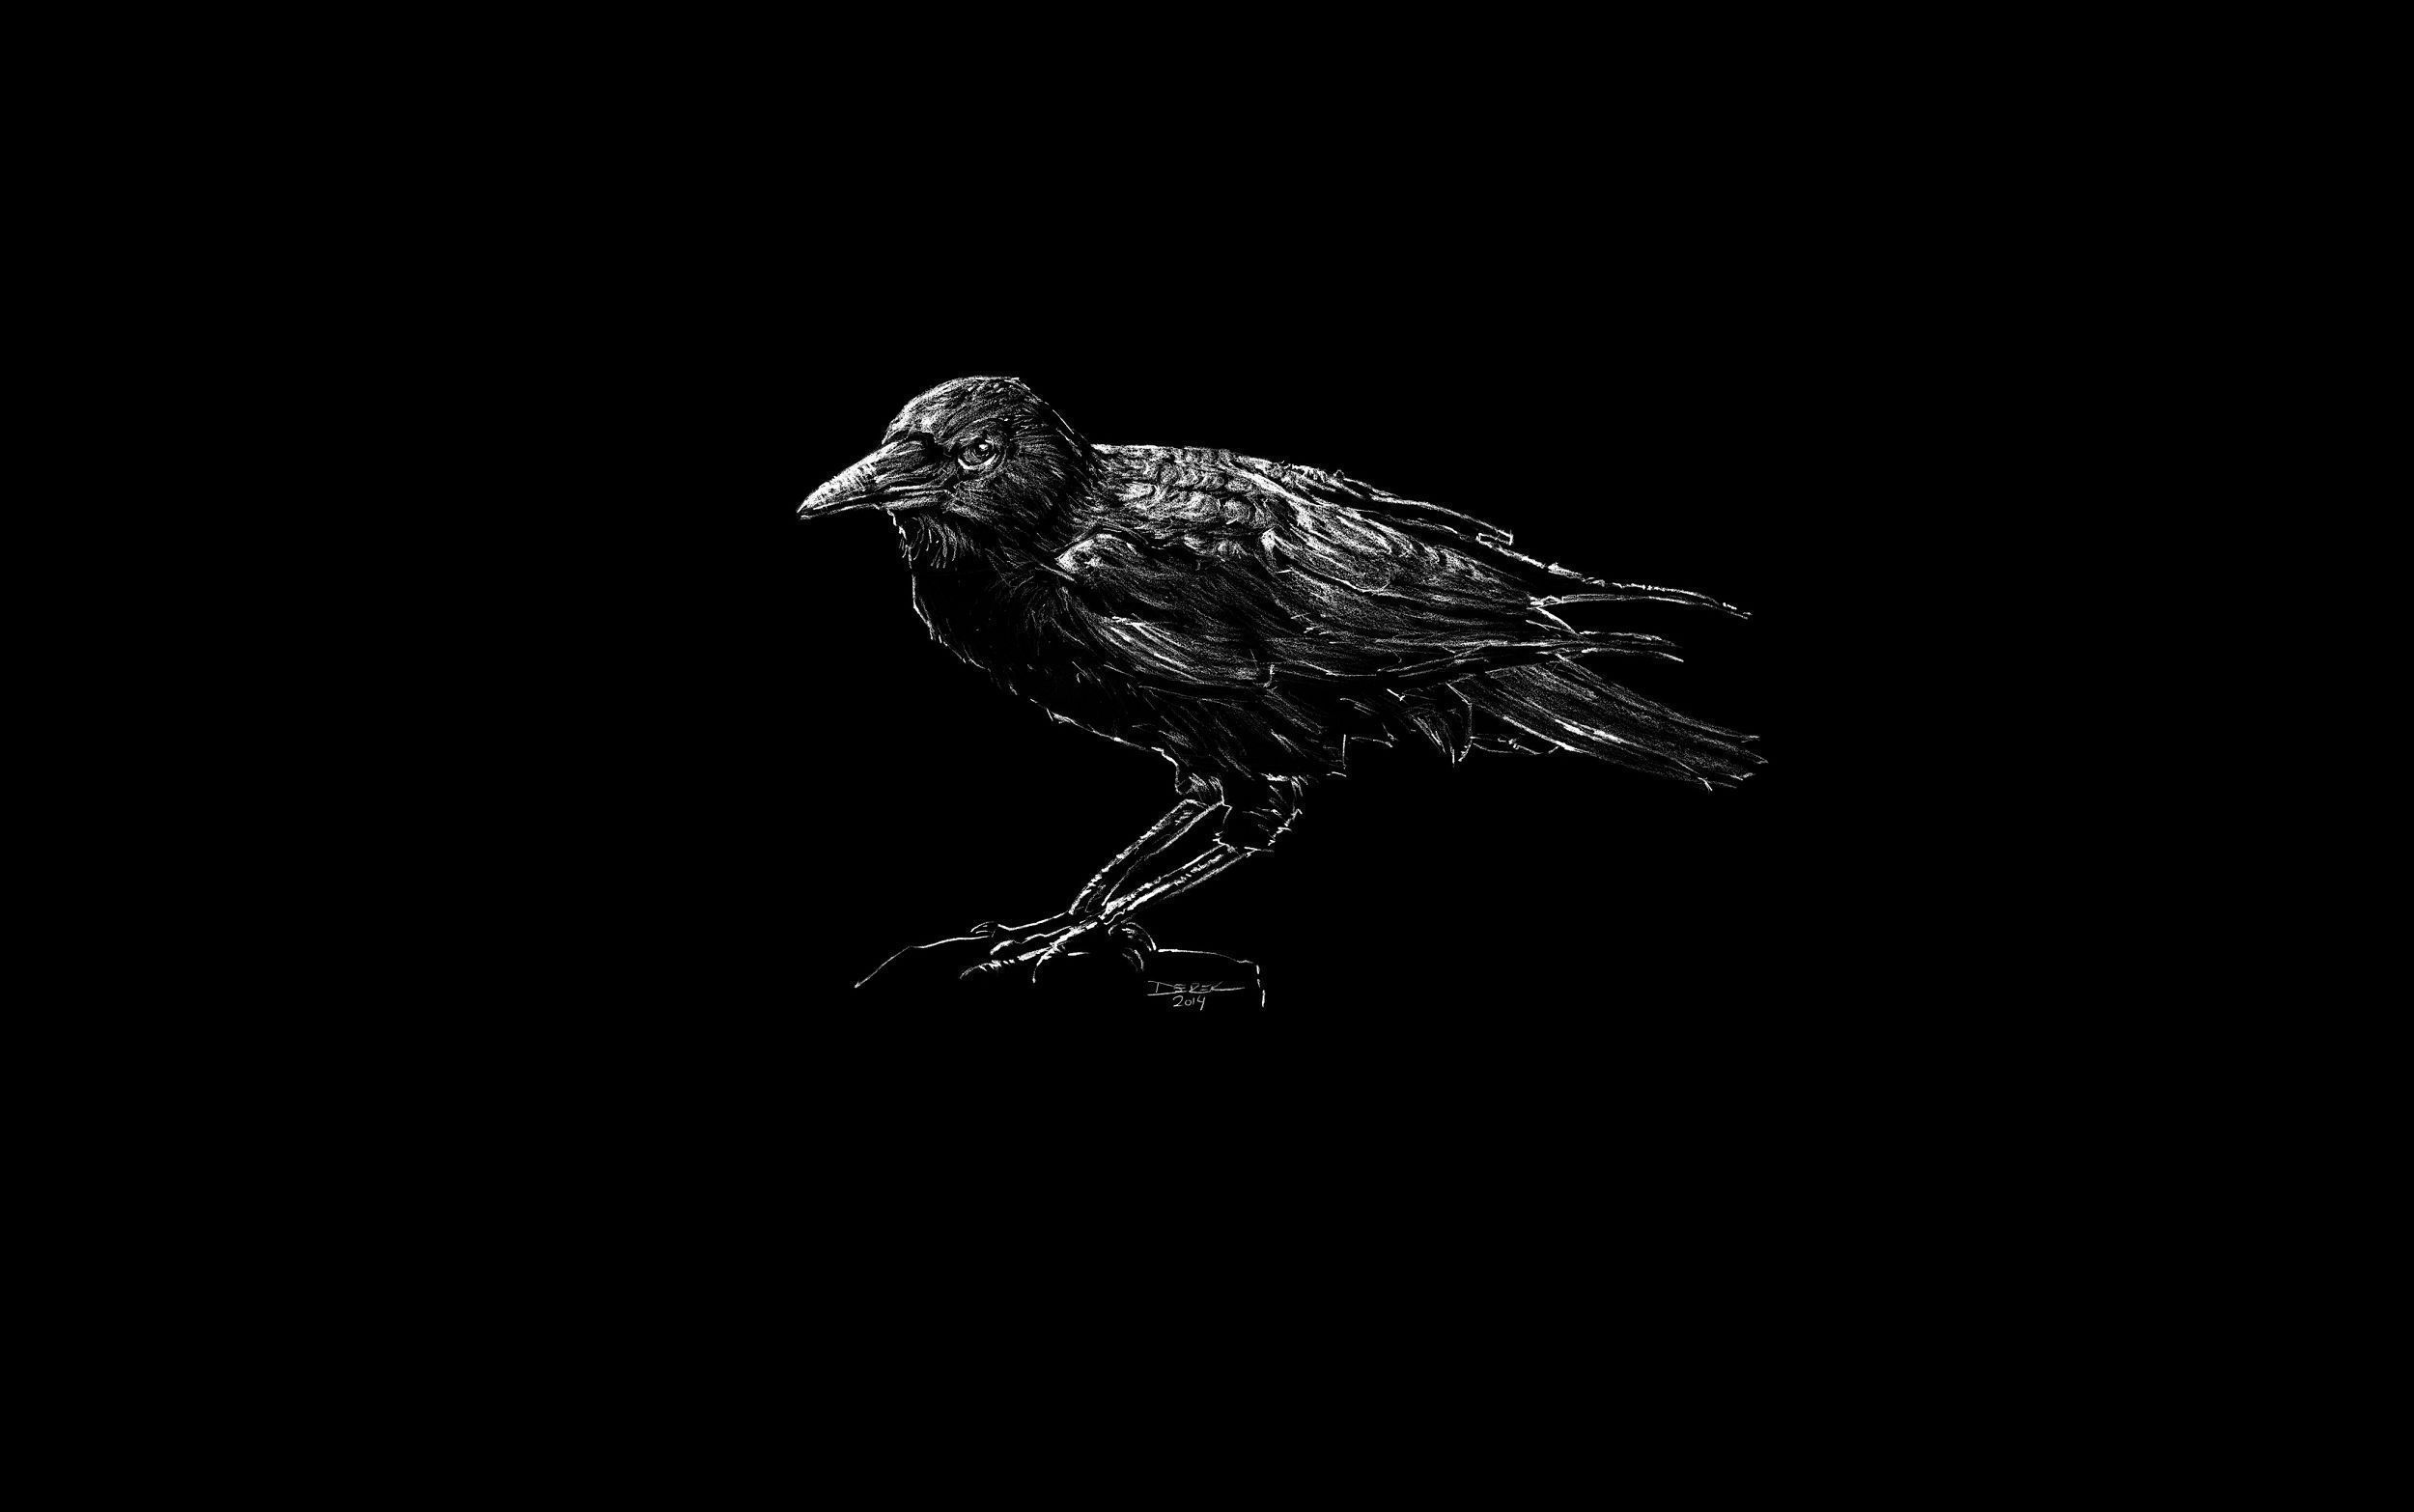 Black Bird HD Desktop